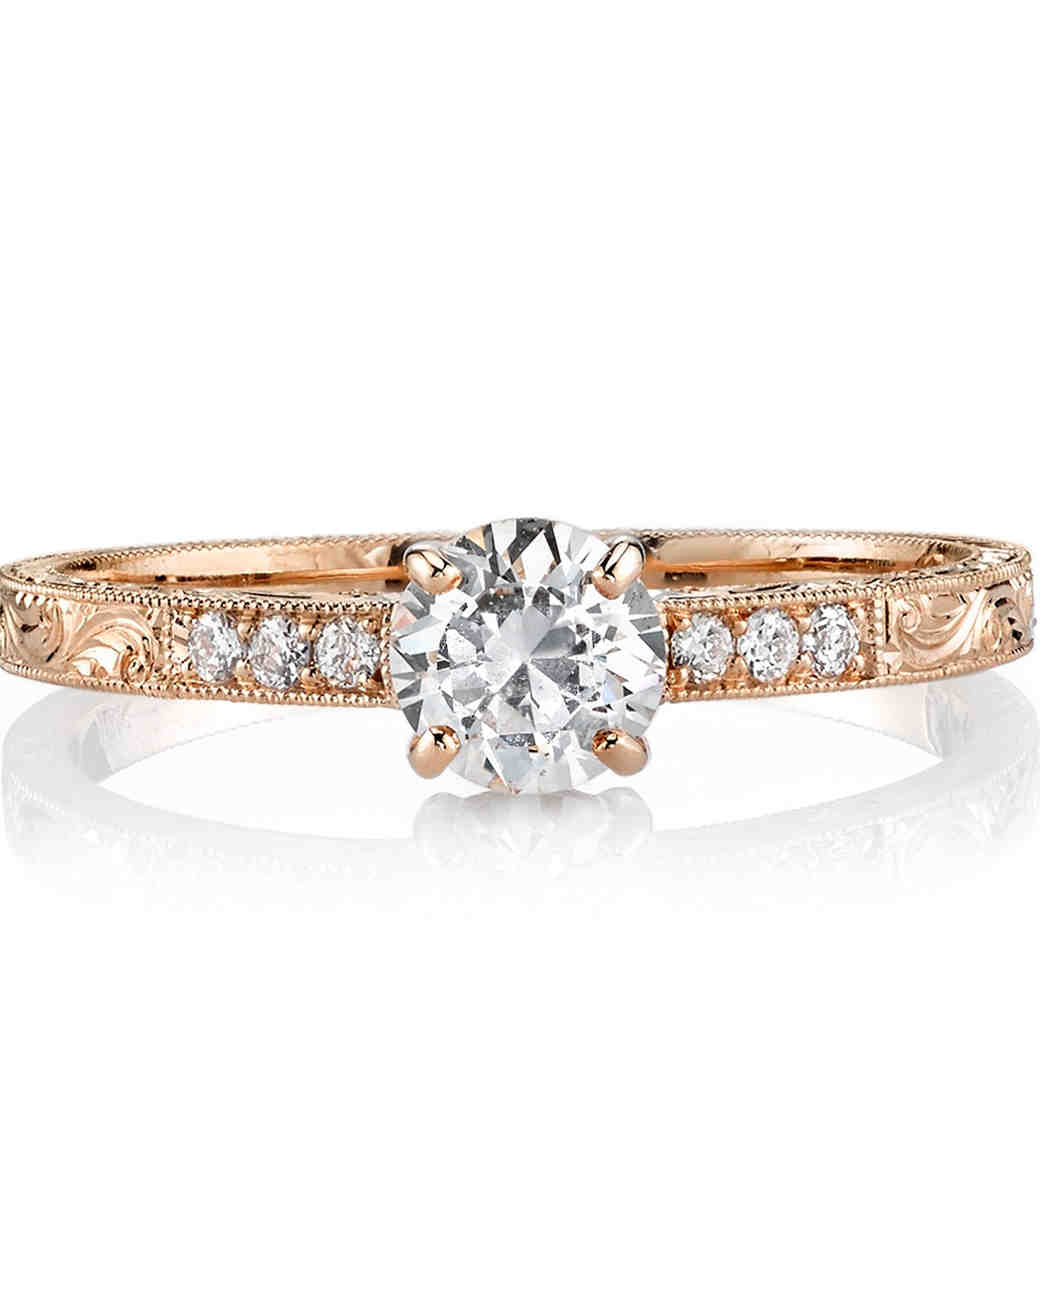 "Single Stone ""Eliza"" certified old European cut diamond set in rose gold"